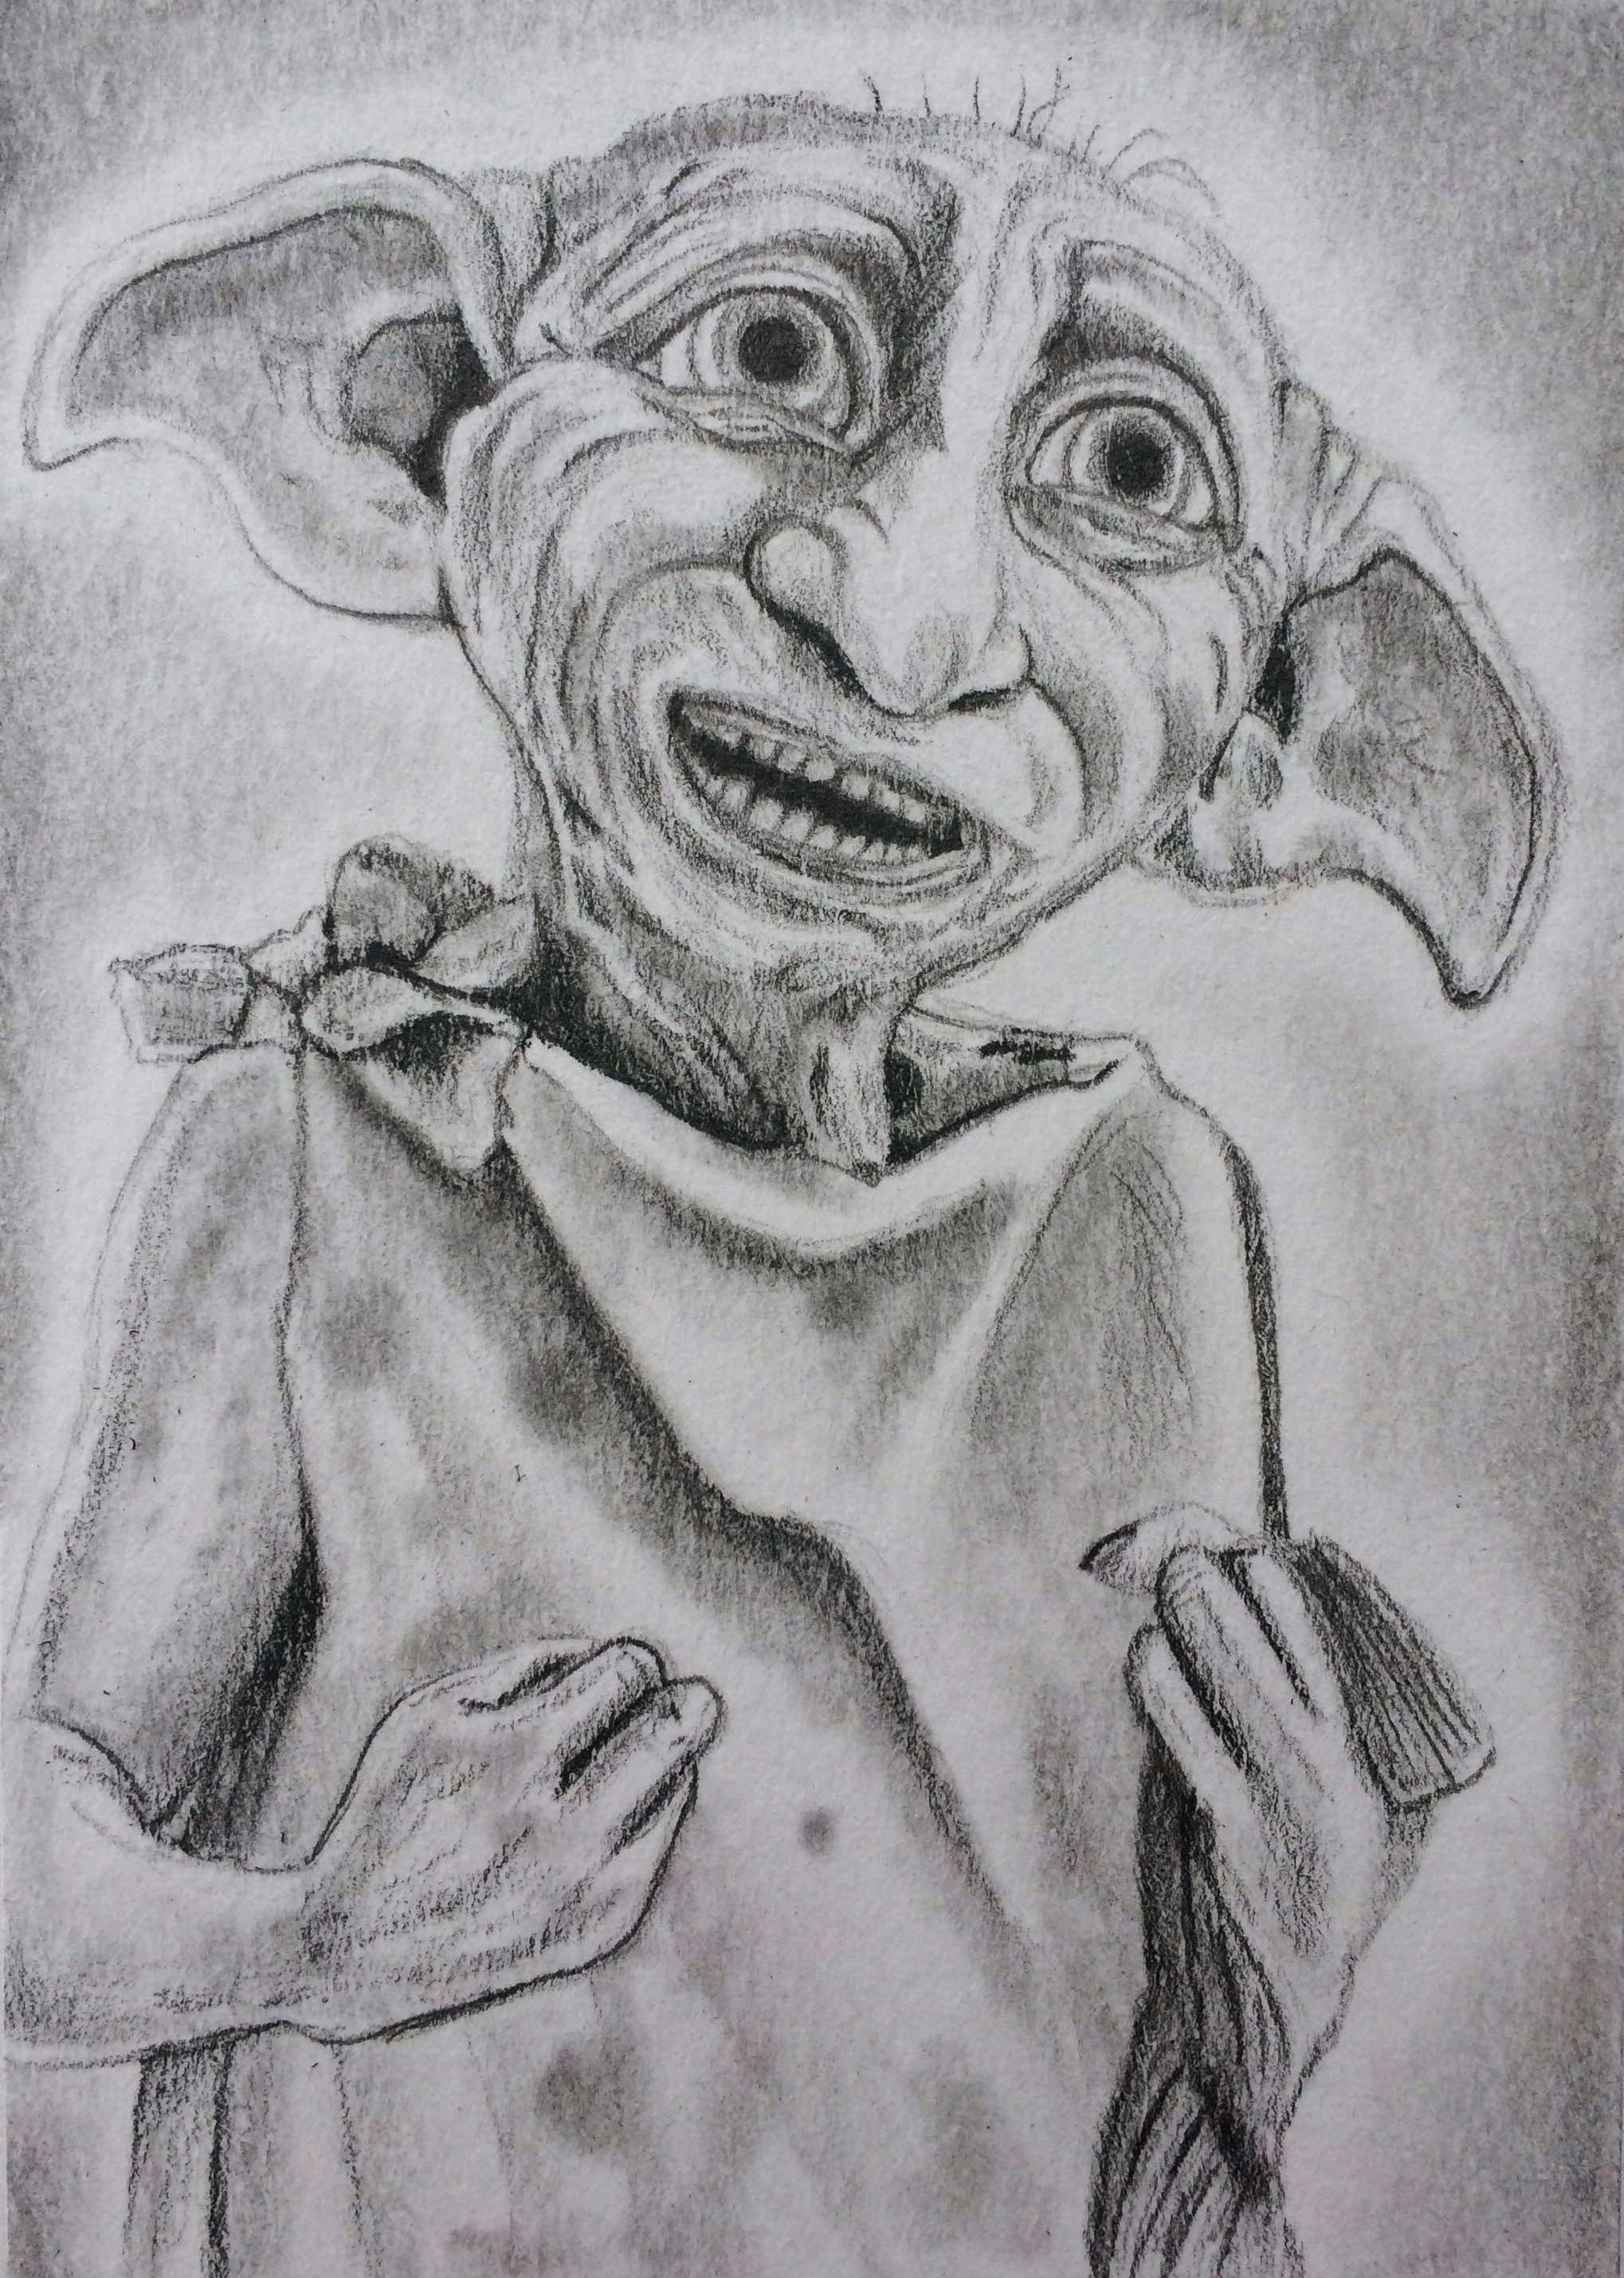 Dobby The House Elf From Harry Potter Aceo Sketch Art Card